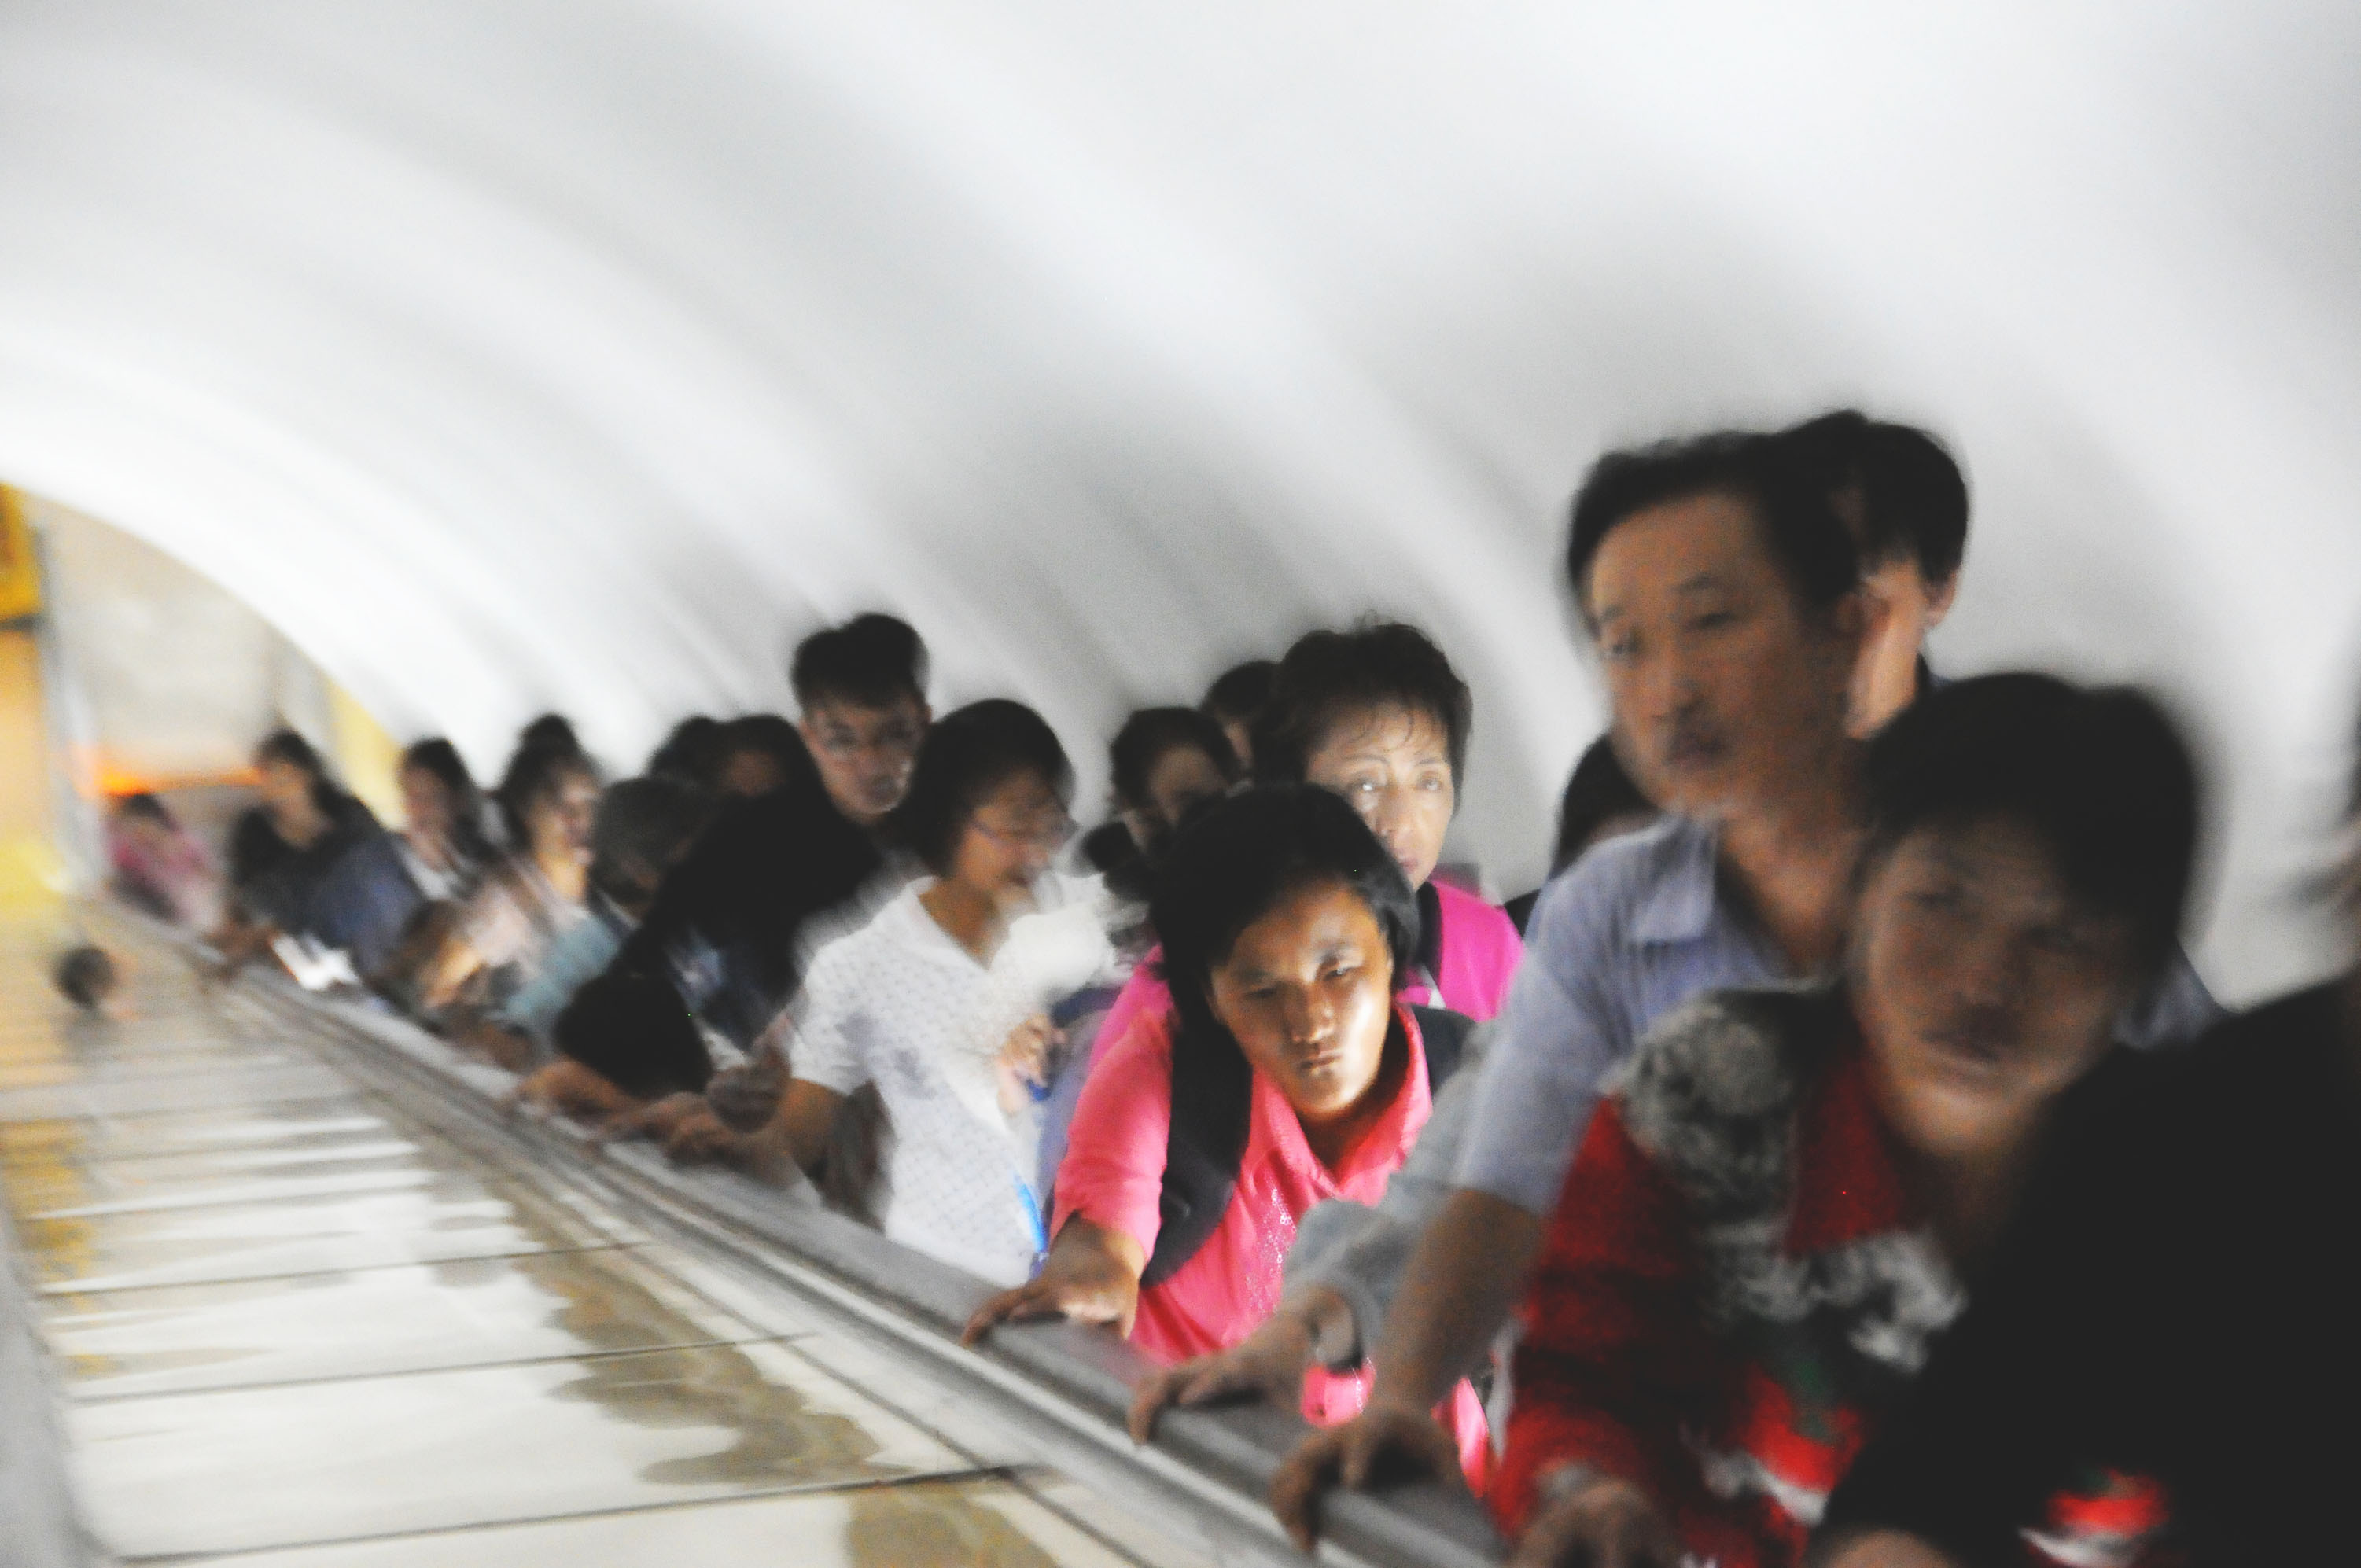 ANJCI ALL OVER | Travelling to North Korea Tourism